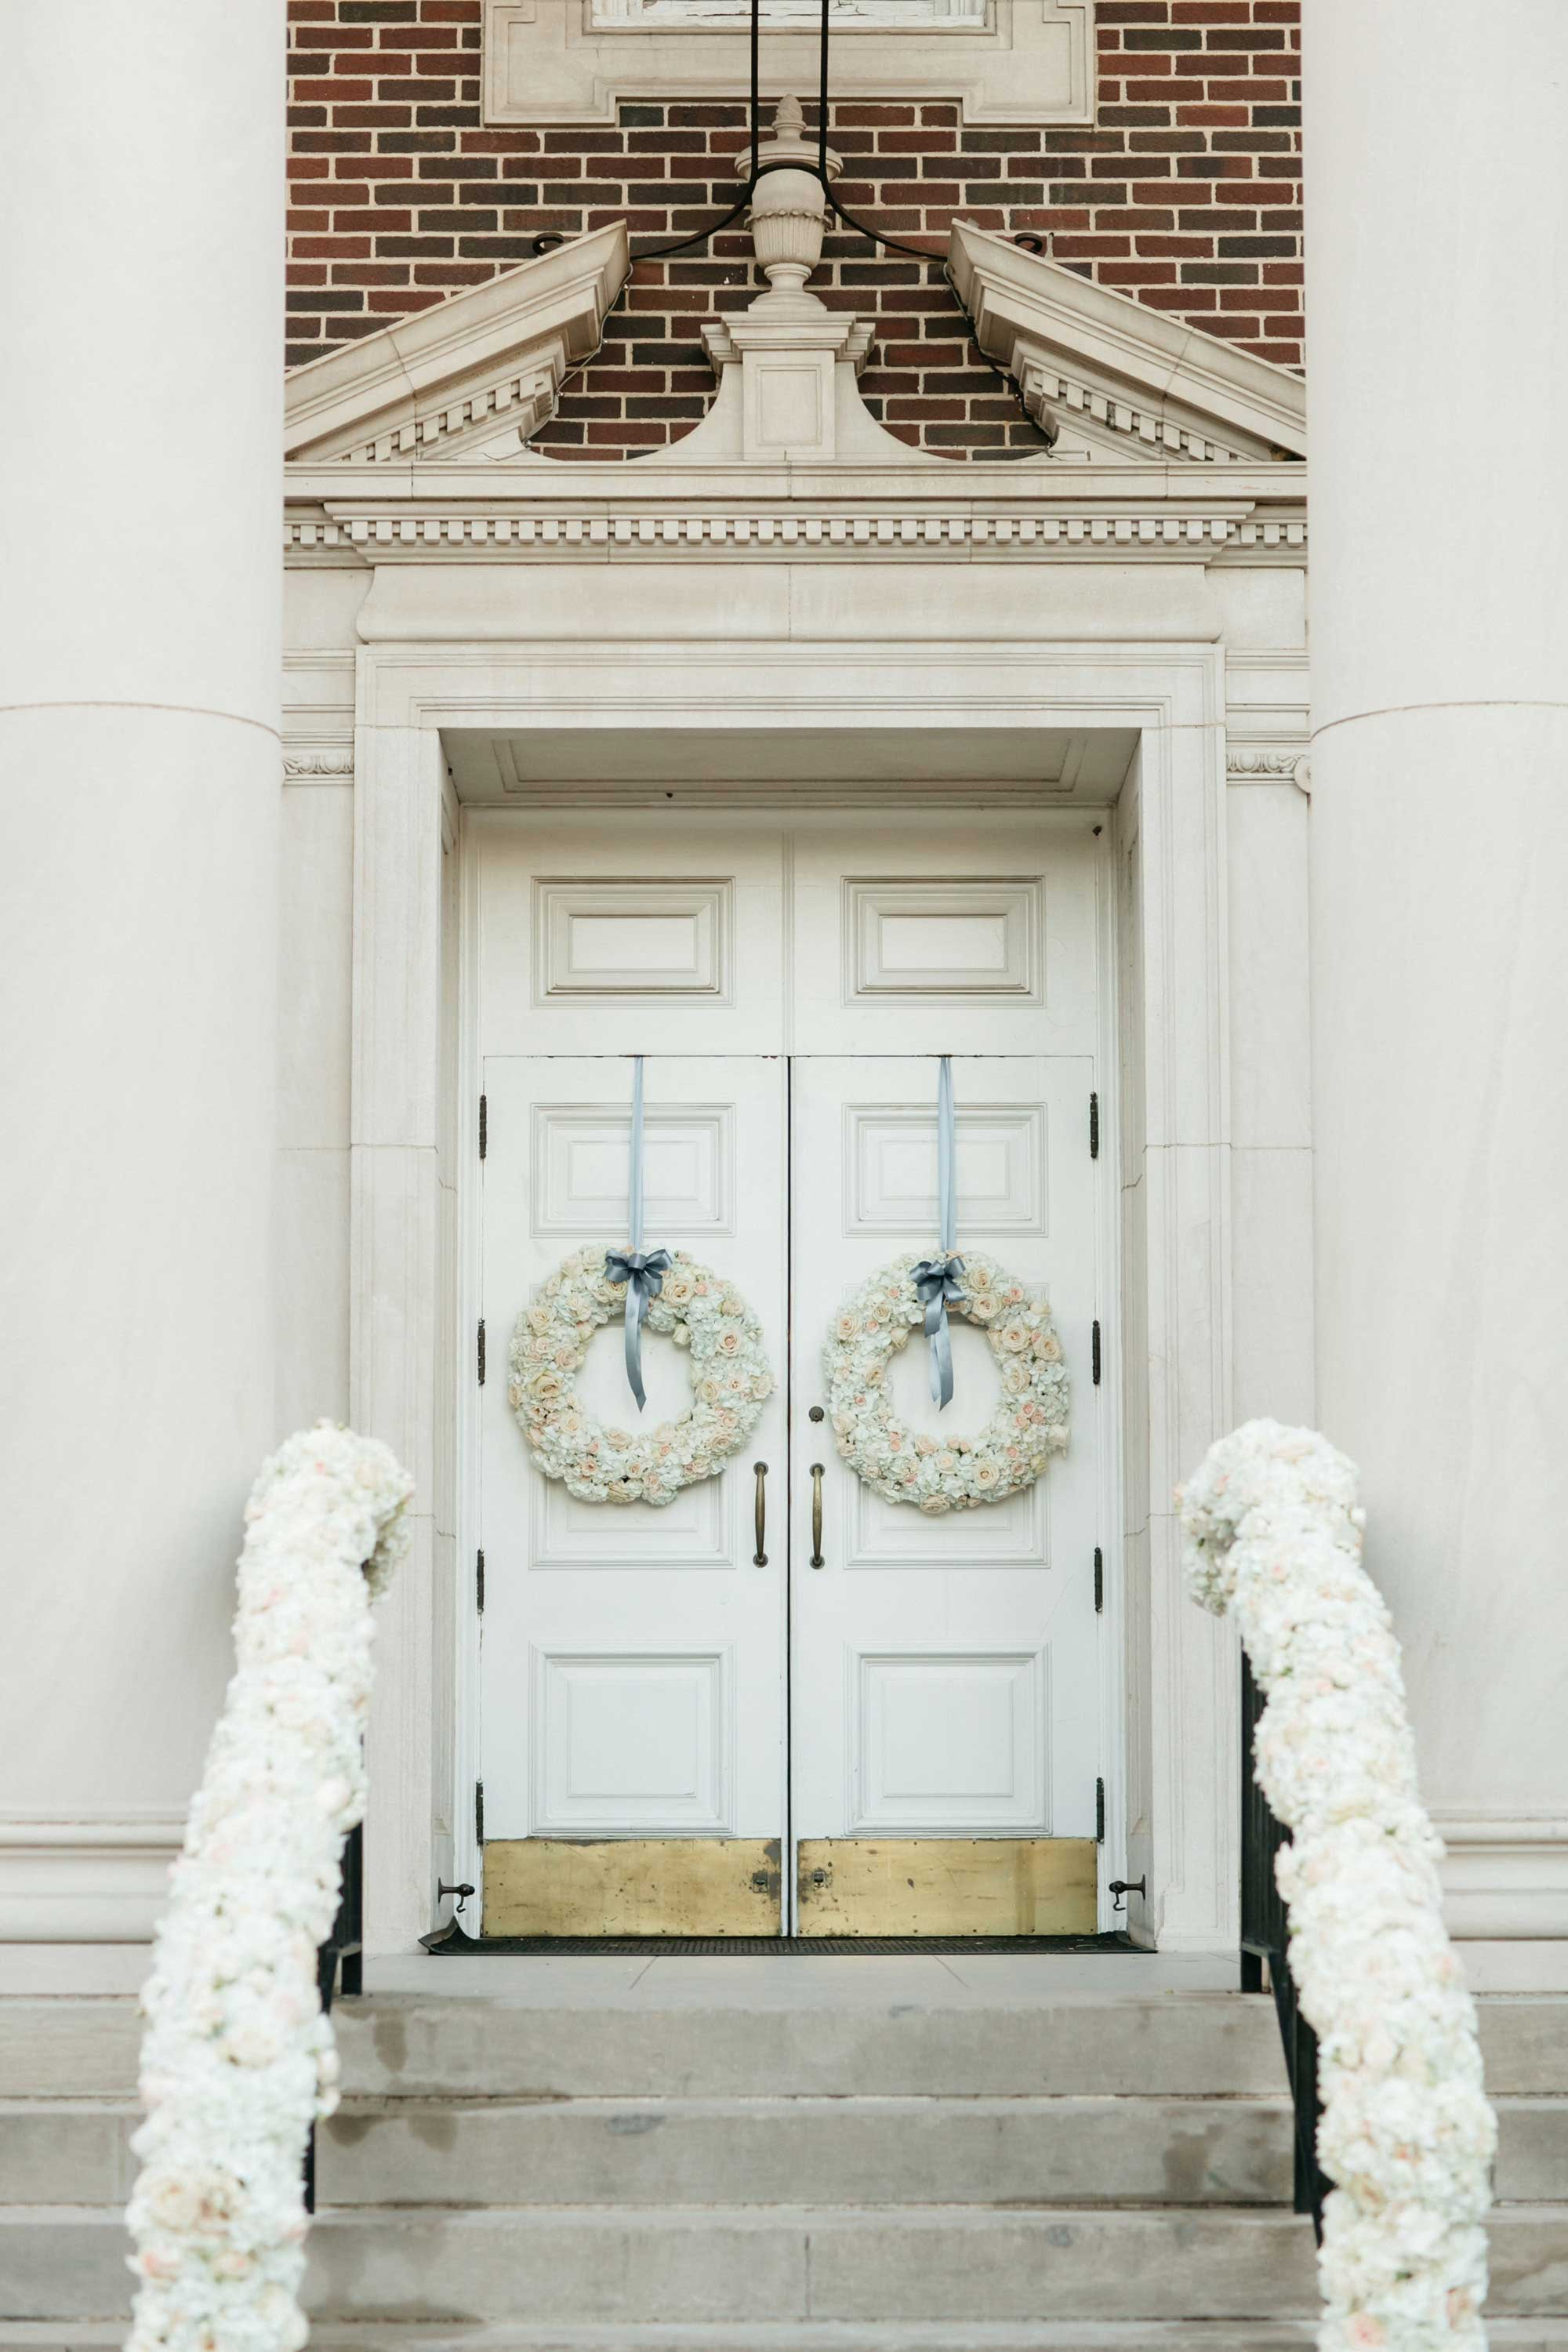 Wedding Ceremony Ideas: 13 Dcor Ideas for a Church